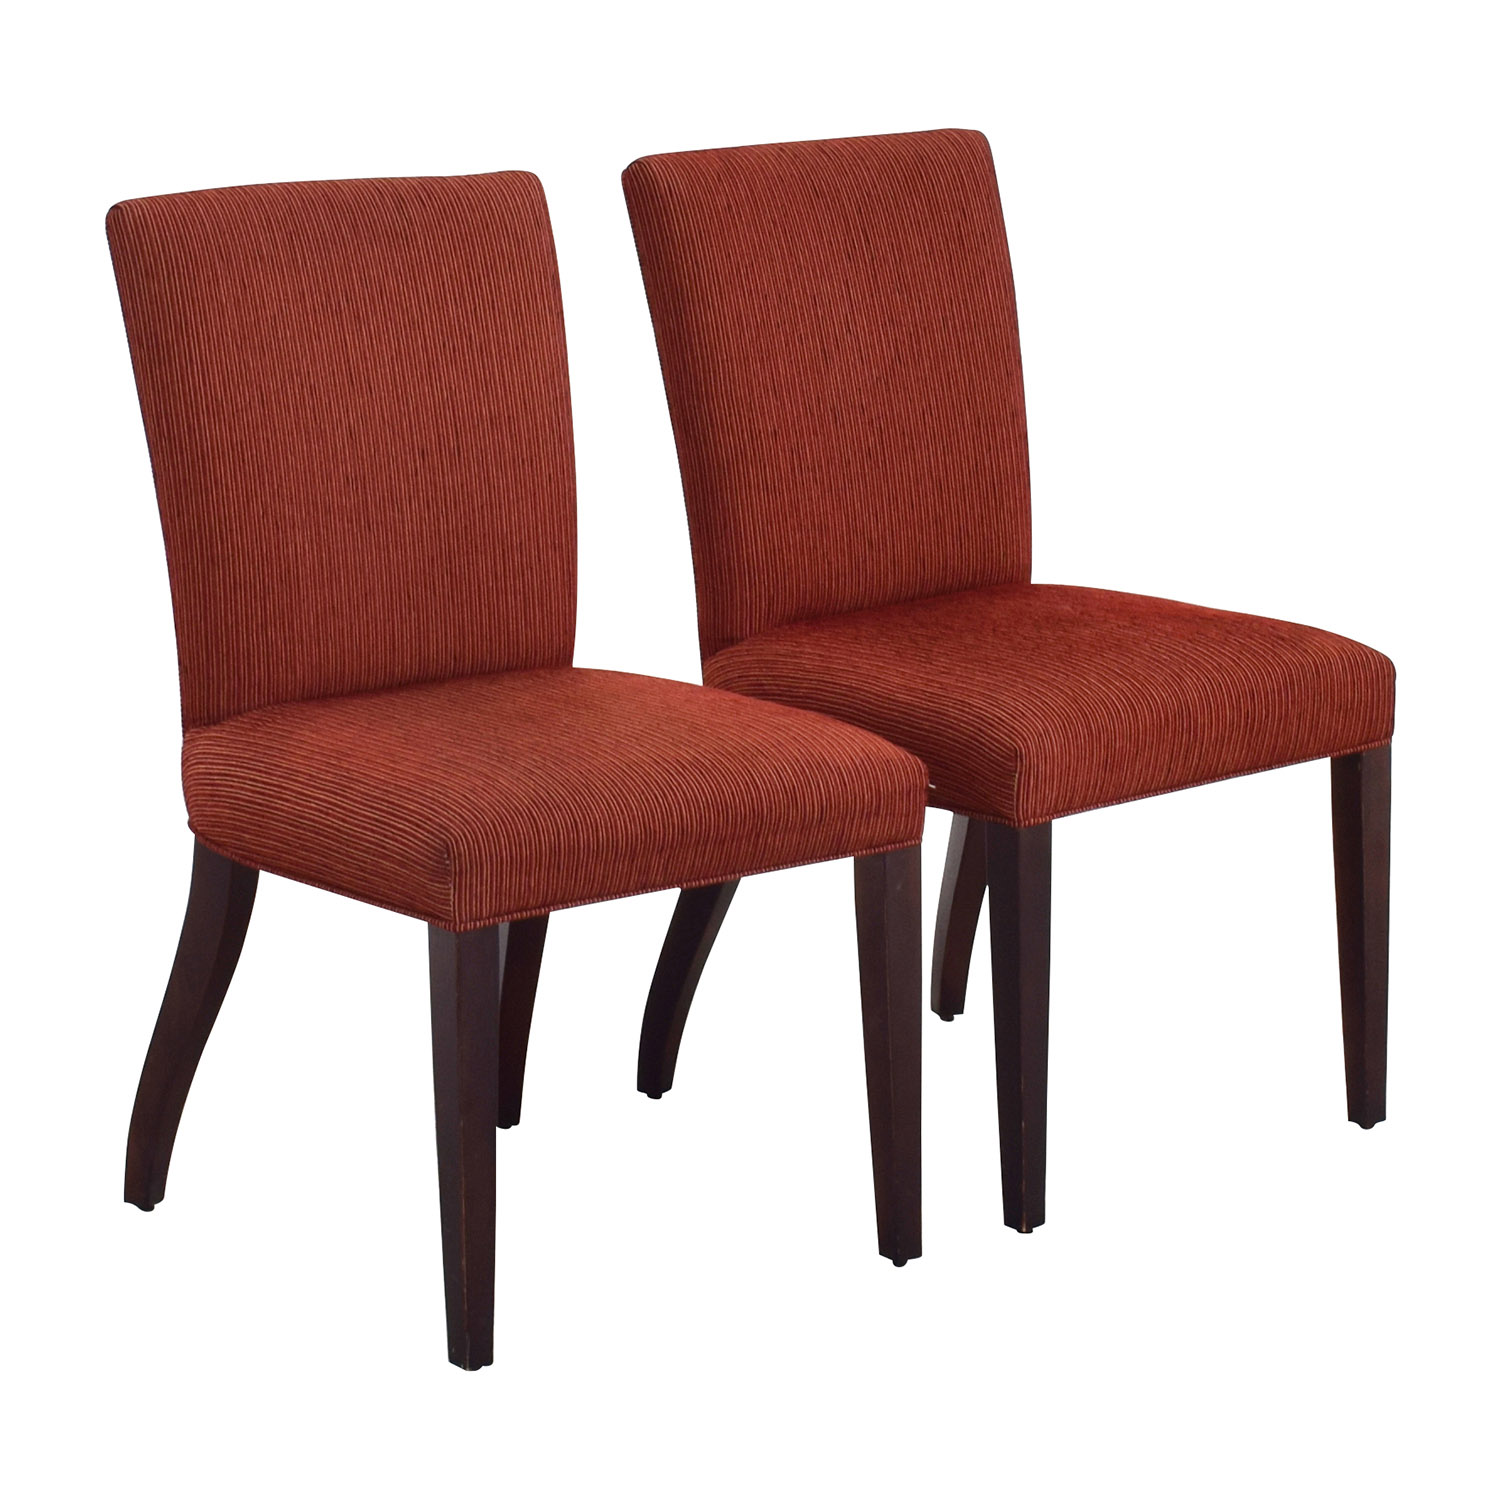 Used Dining Room Chairs: Room & Board Room & Board Anssel Rust Dining